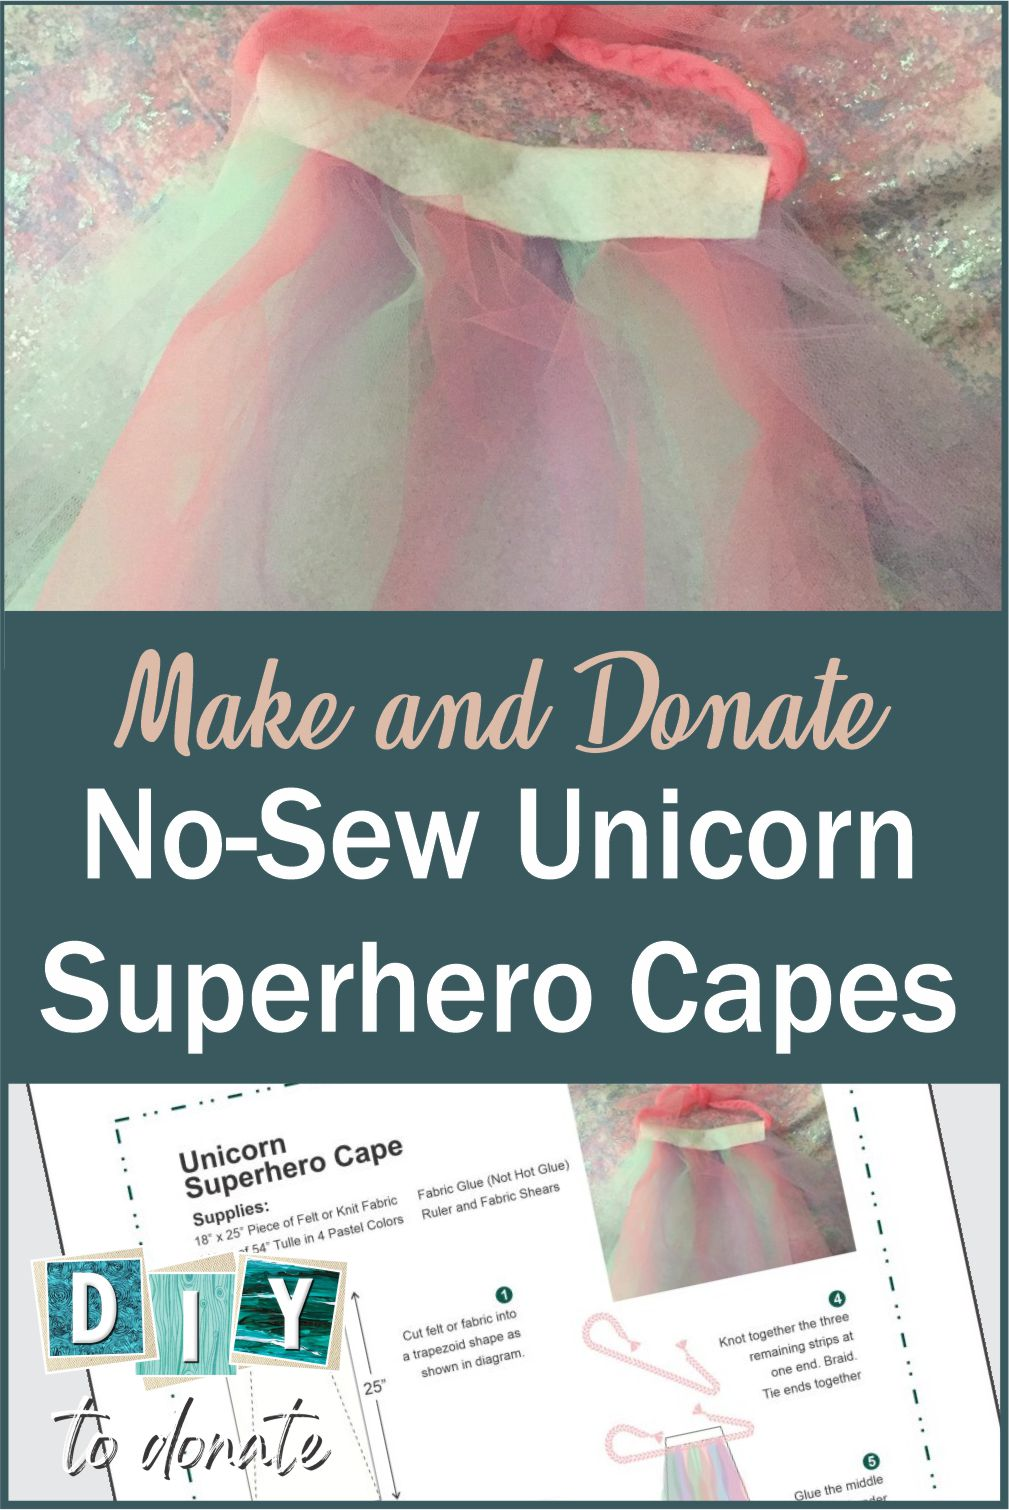 When you make a unicorn superhero cape and give it to a little girl it has the power to make her feel that anything is possible. #diytodonate #unicorns #magic #unicornmagic #unicorncape #diy #donate #giveback #powerful #girlpower #anythingispossible #believe